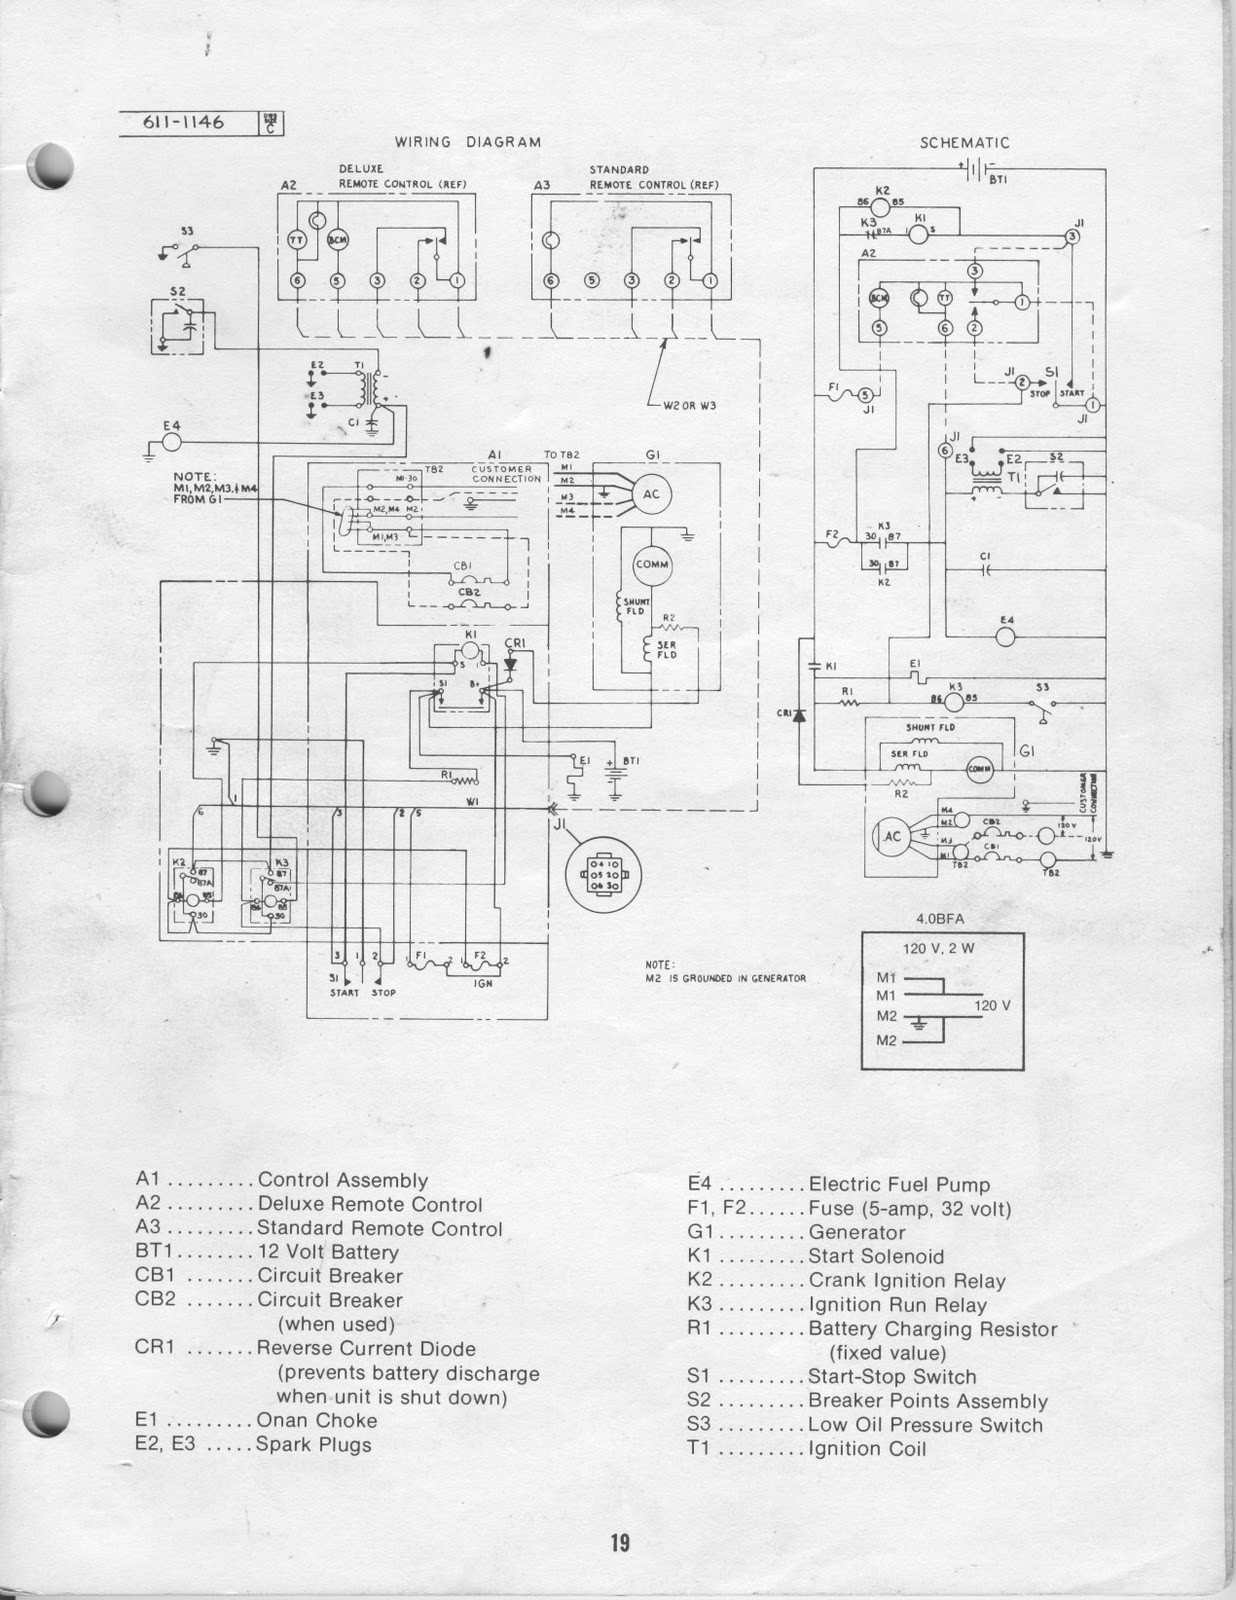 hight resolution of wiring diagram for 4500 bgd onan generator wiring diagrams schematics 6000 onan rv generator wiring diagram